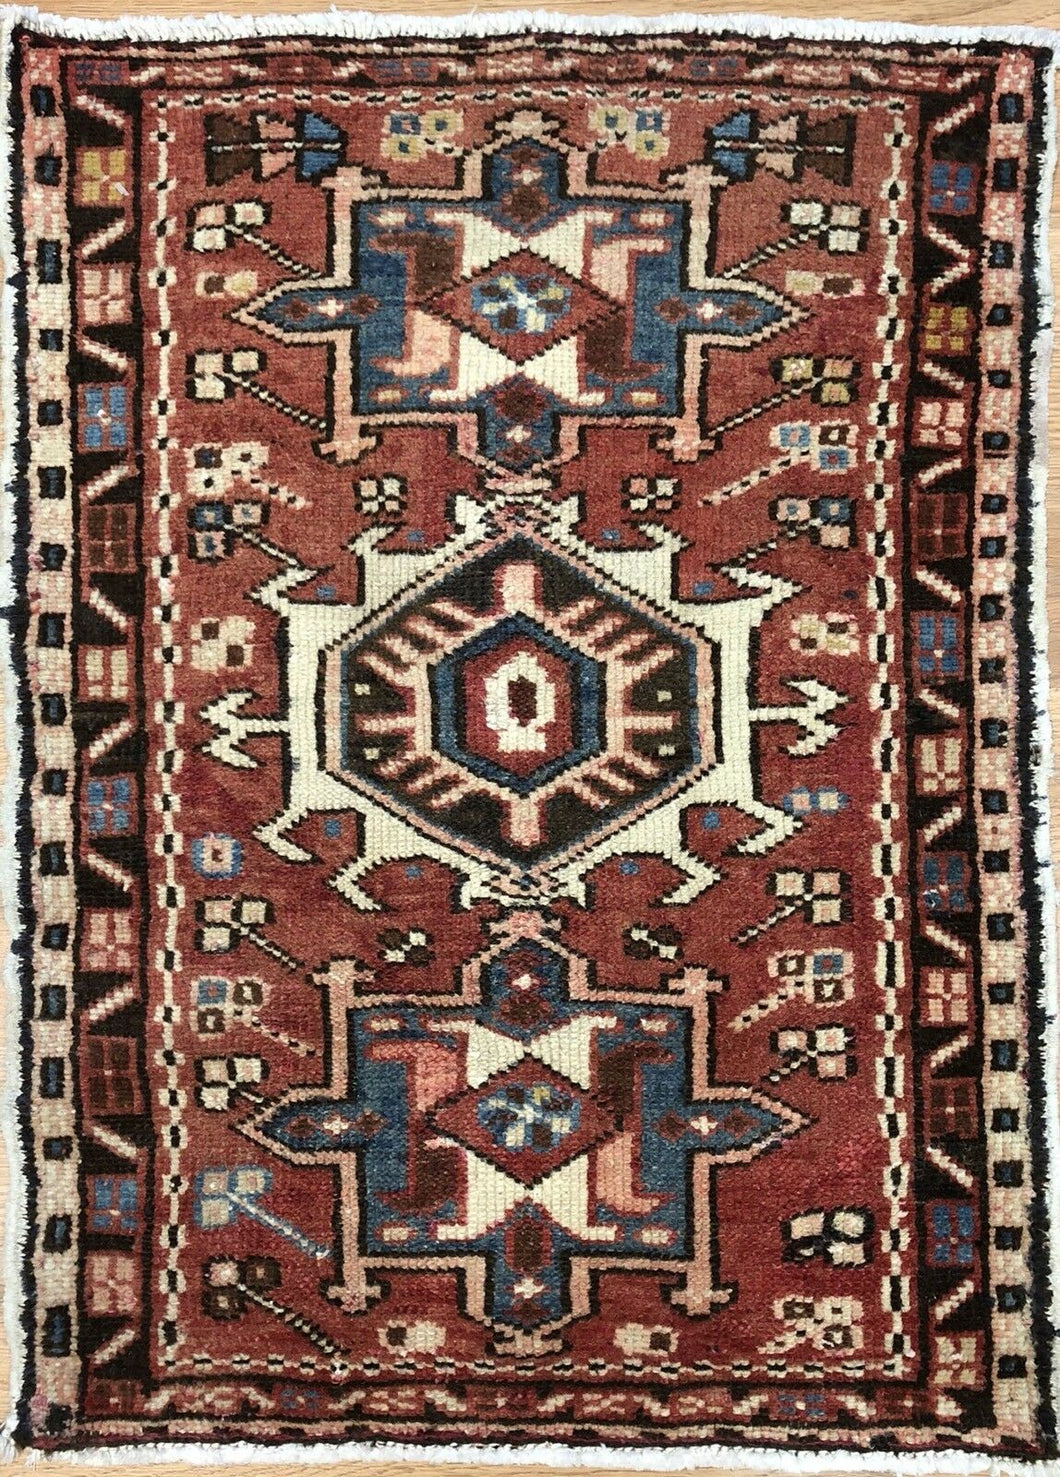 Handsome Heriz - 1930s Antique Karaja Rug - Tribal Carpet - 1'10